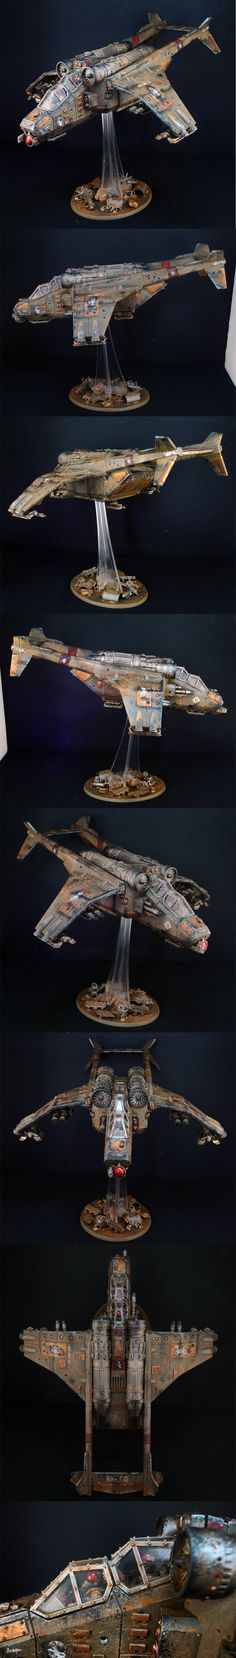 40k - Death Korps of Krieg Valkyrie Vendetta by TheMiniatureWorksjop via coolminiornot.com